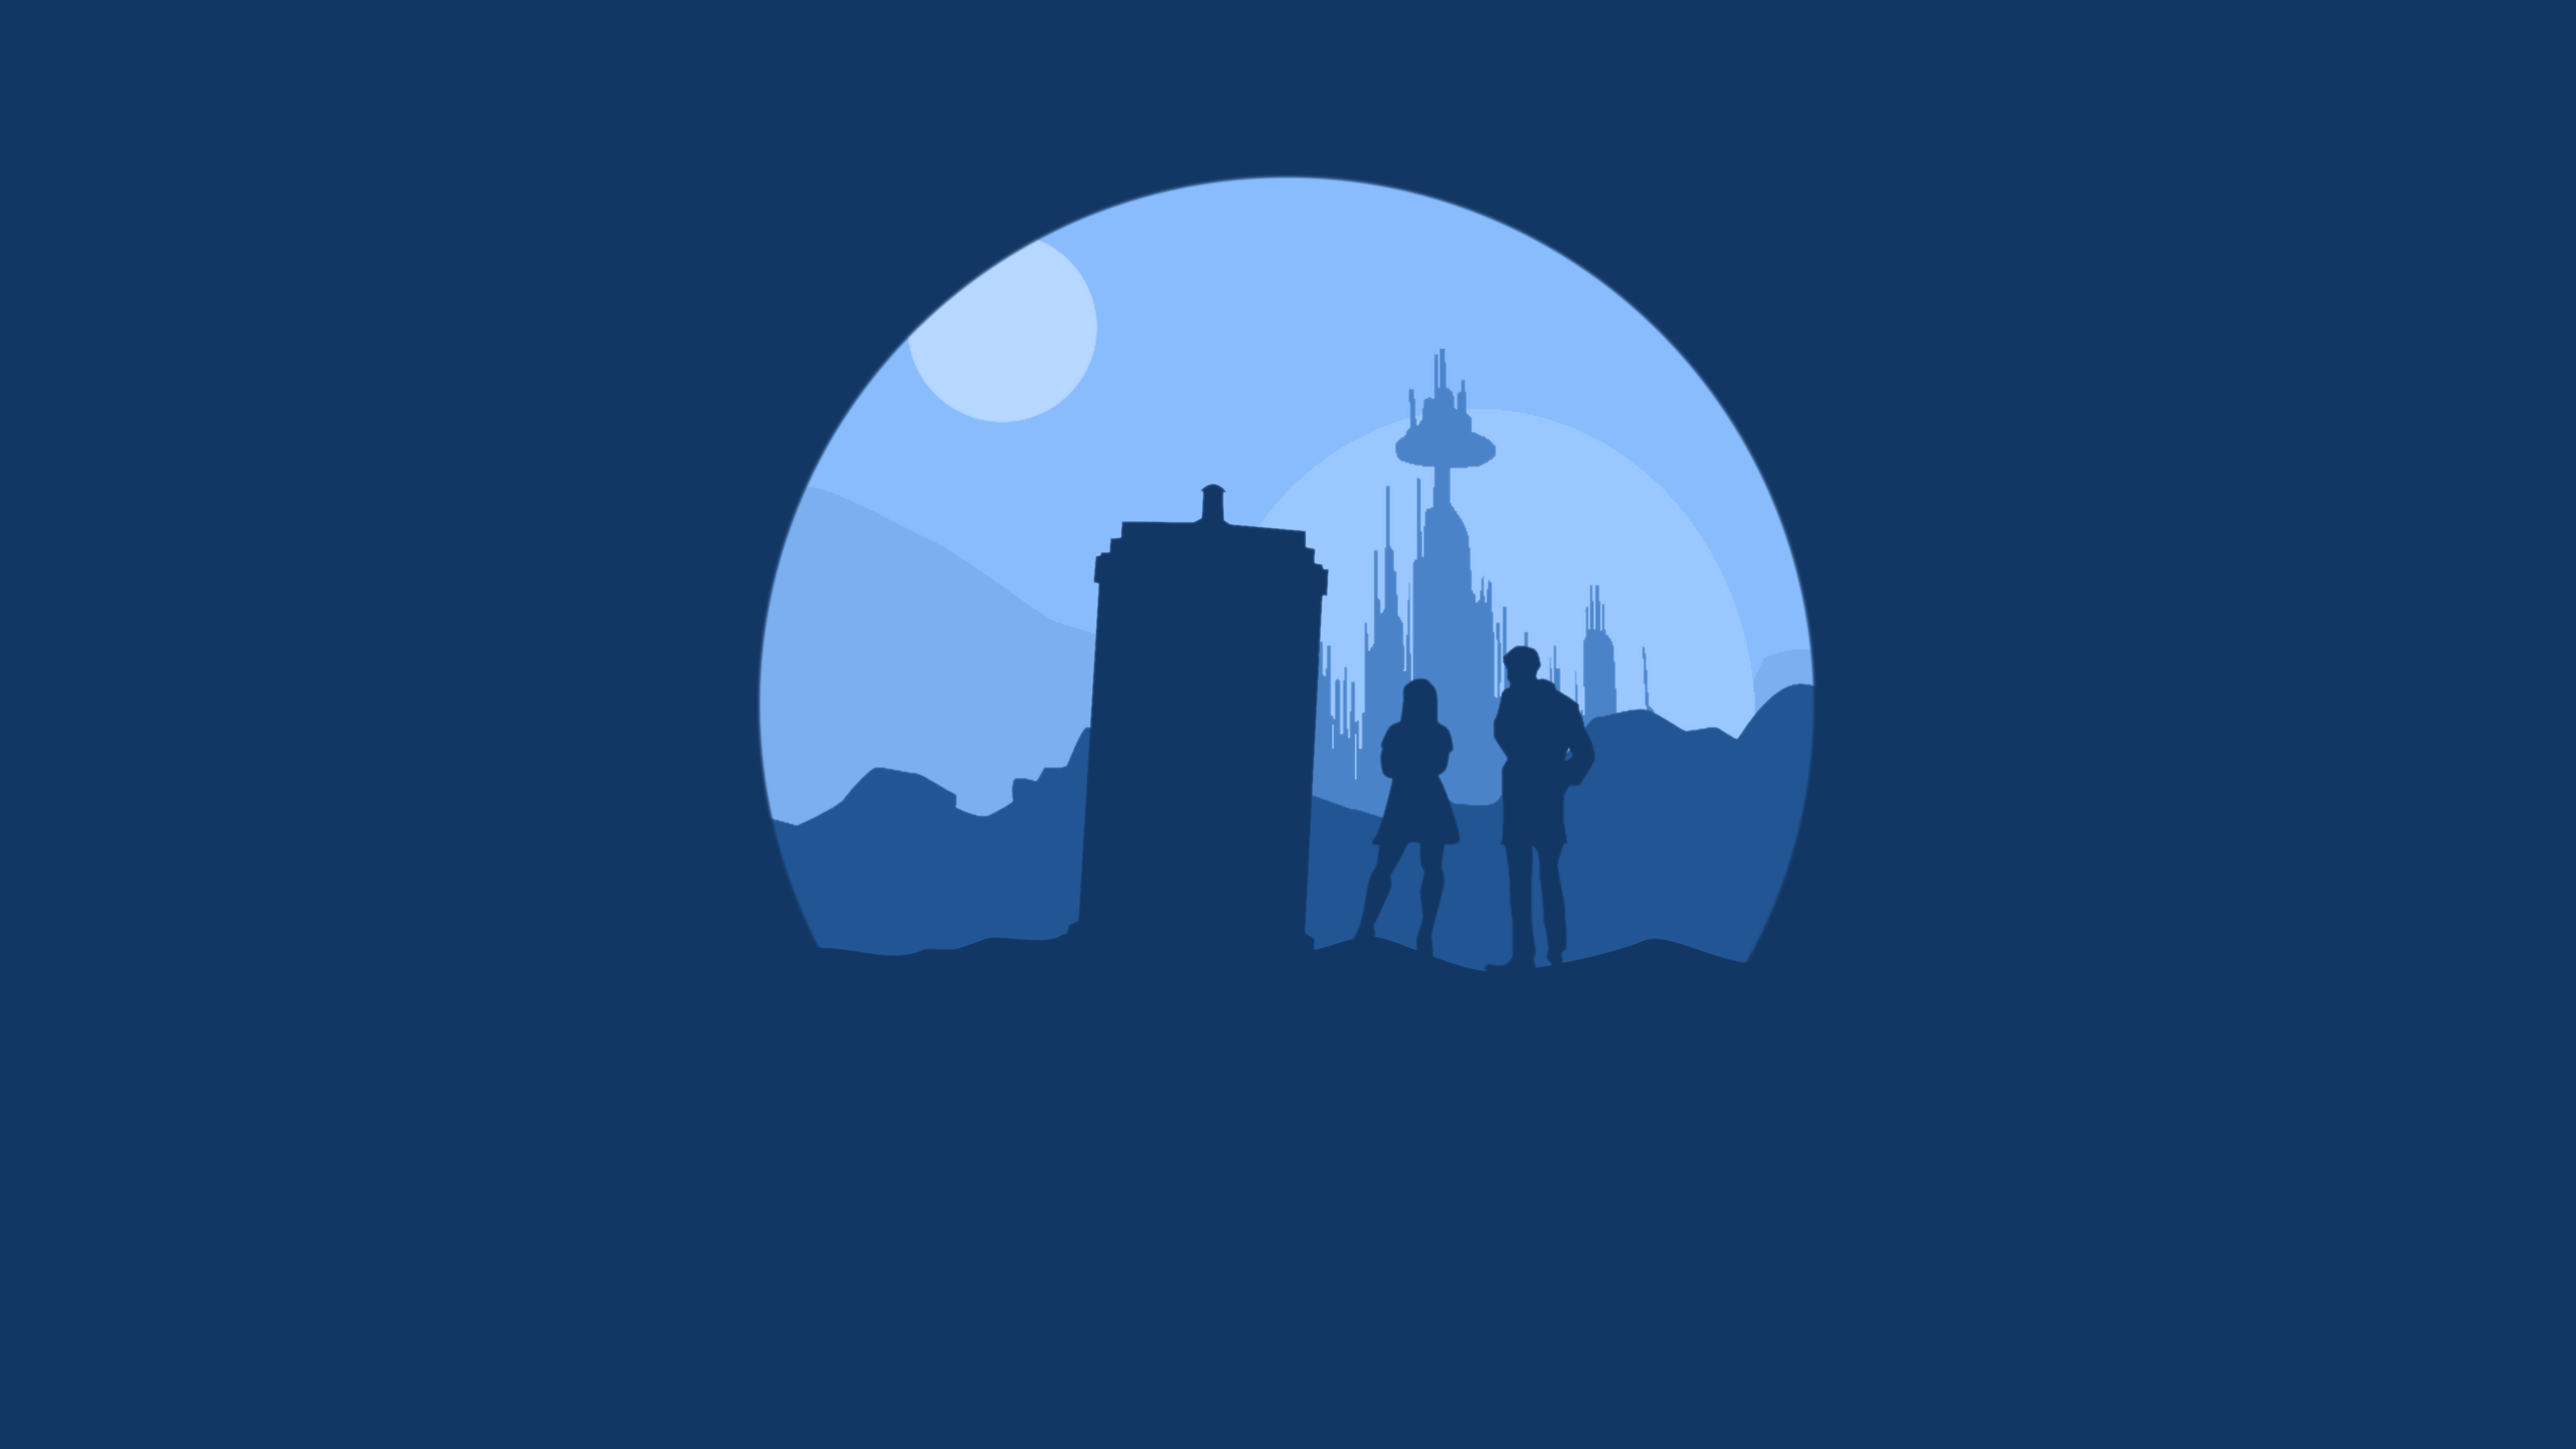 Minimalist doctor who by rubixcraft on deviantart for A minimalist